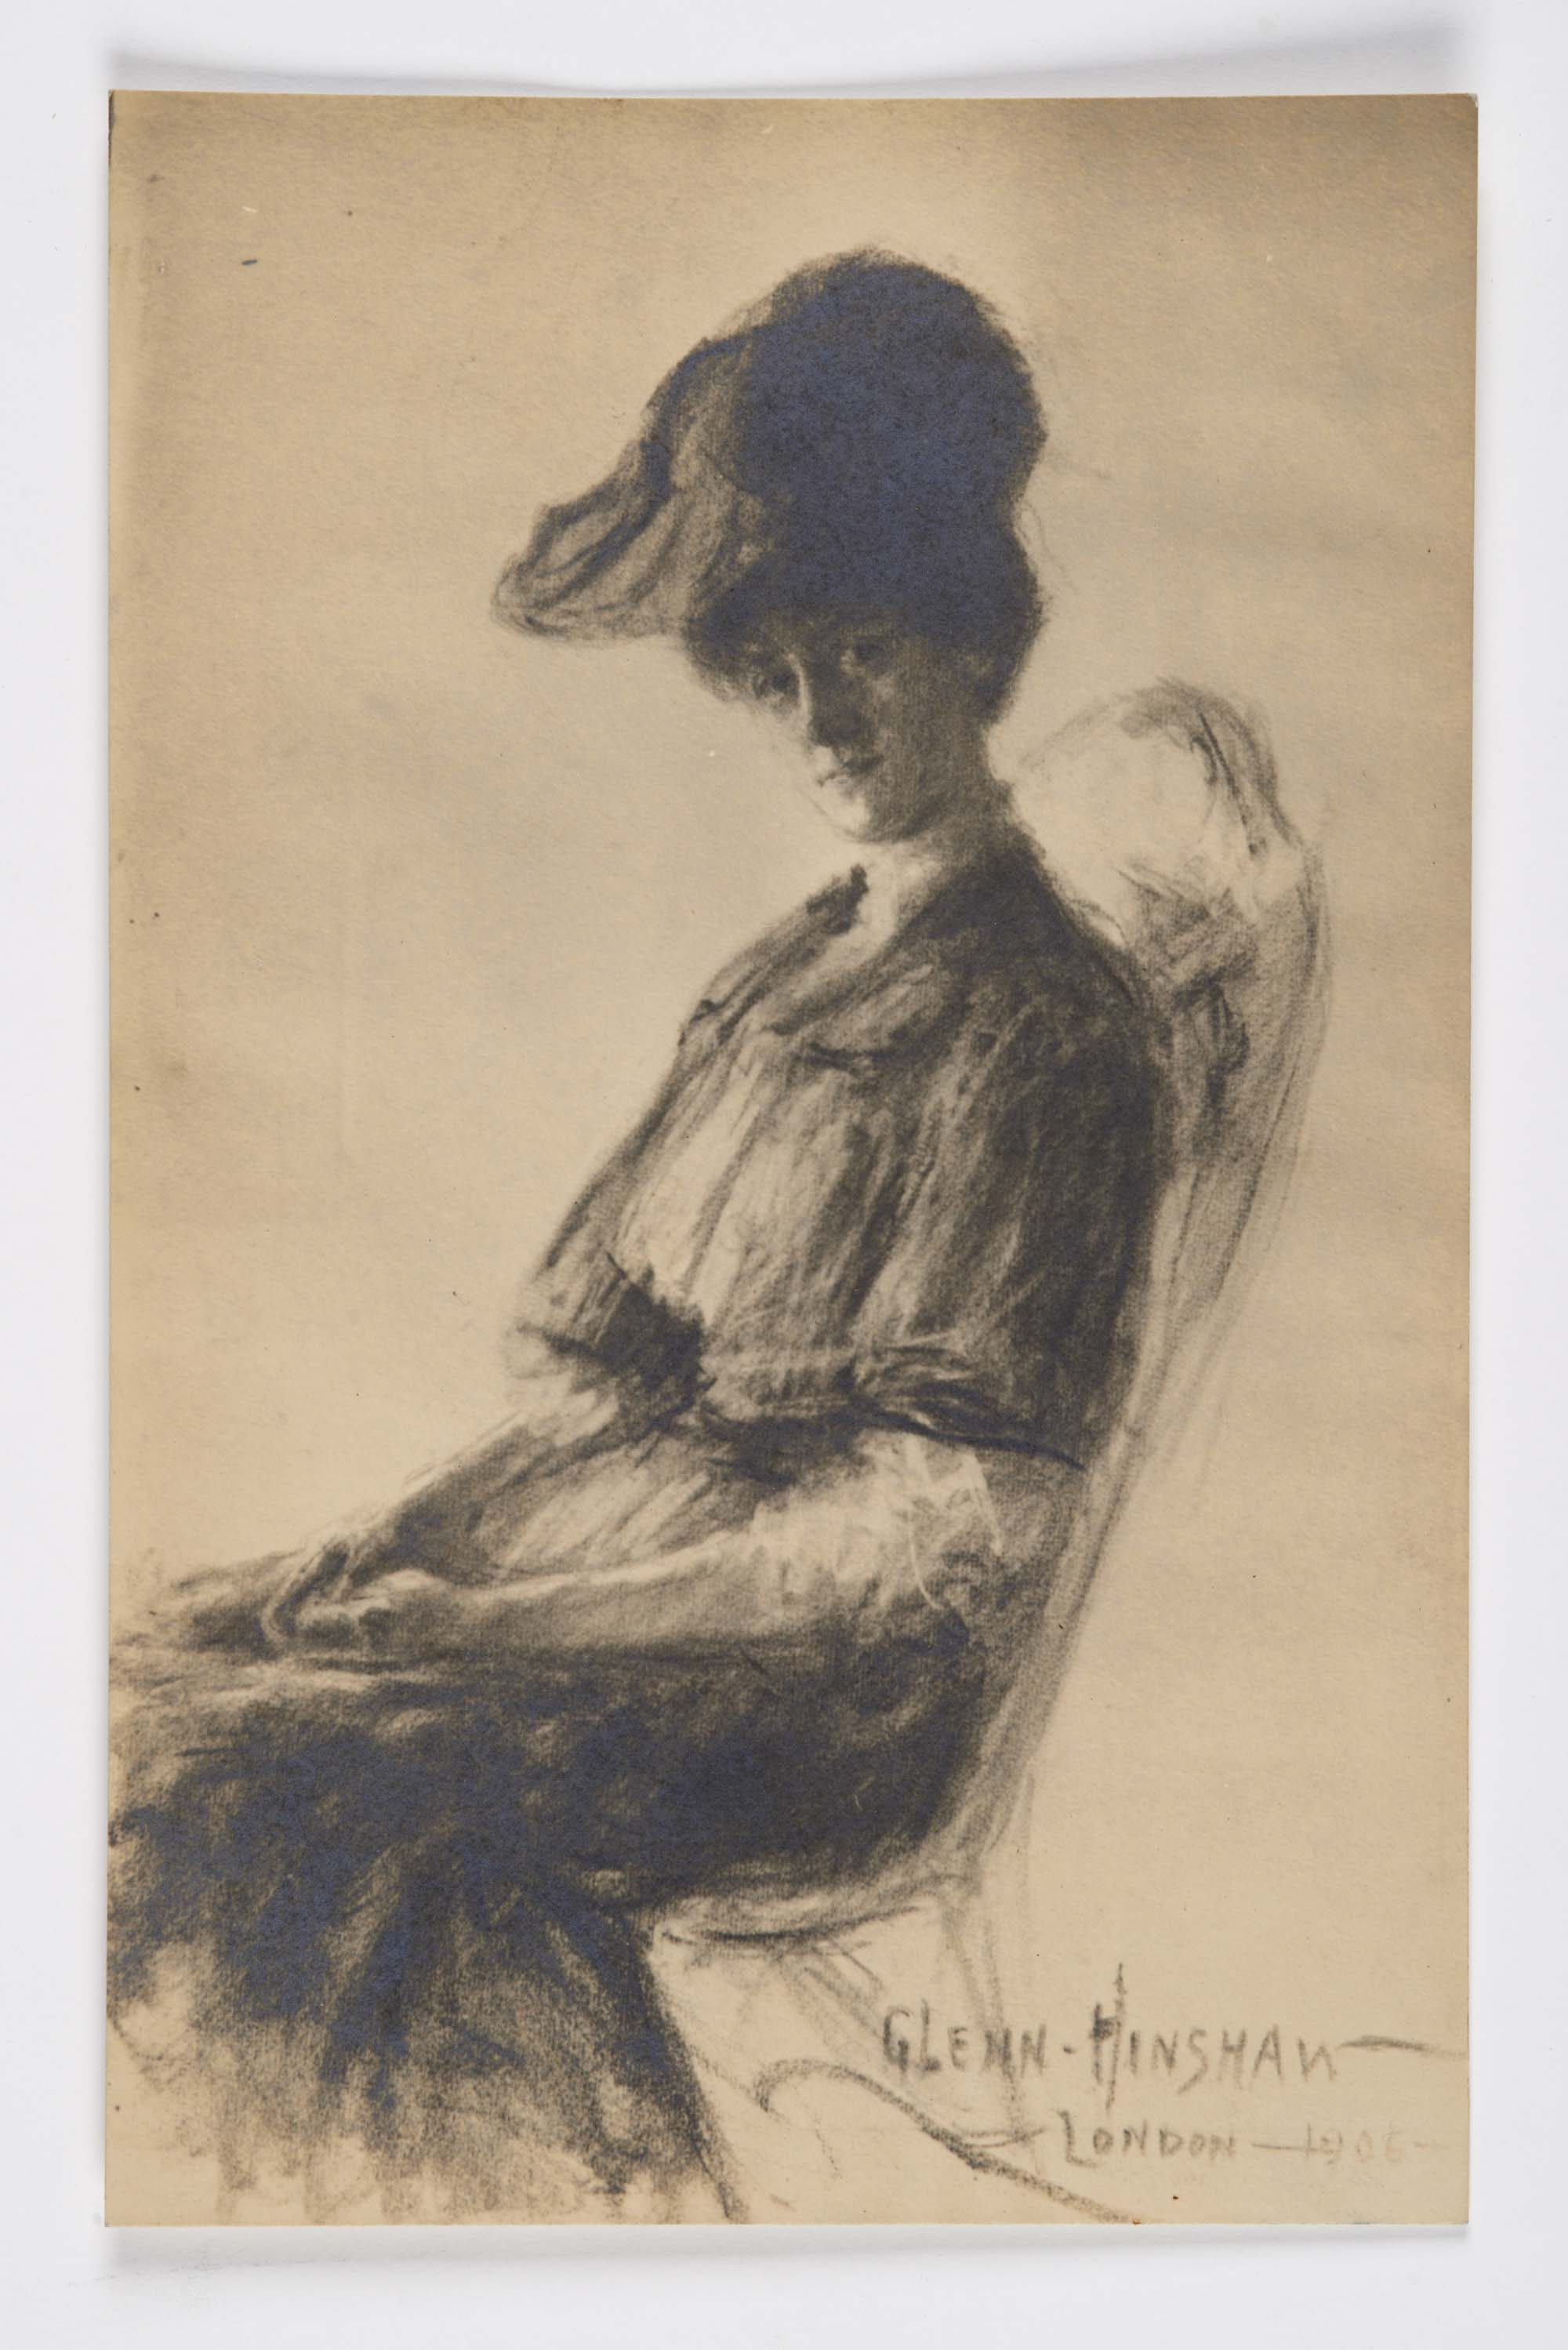 a print of a watercolour of a seated Edwardian lady